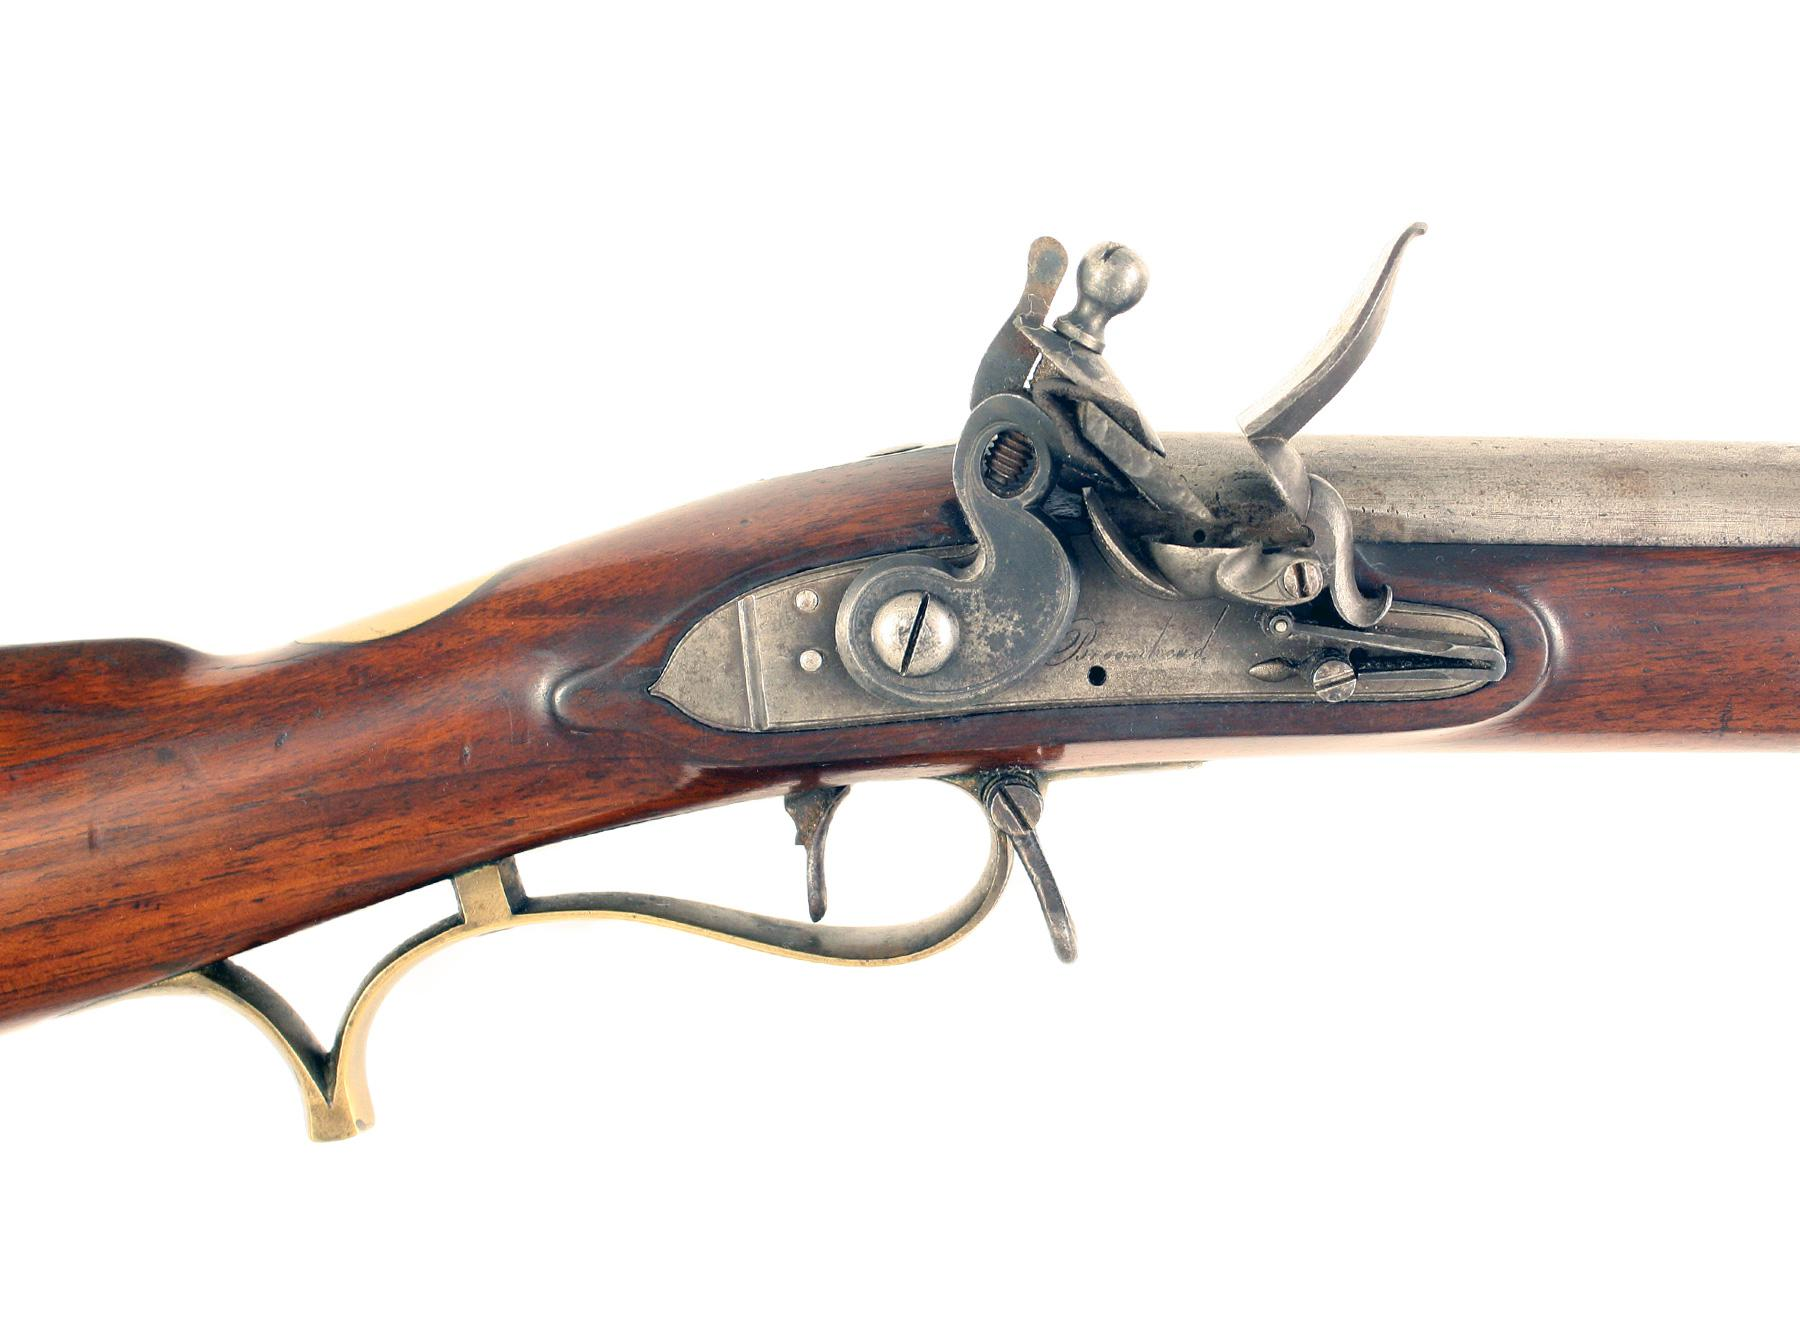 A Baker Rifle by Broomhead